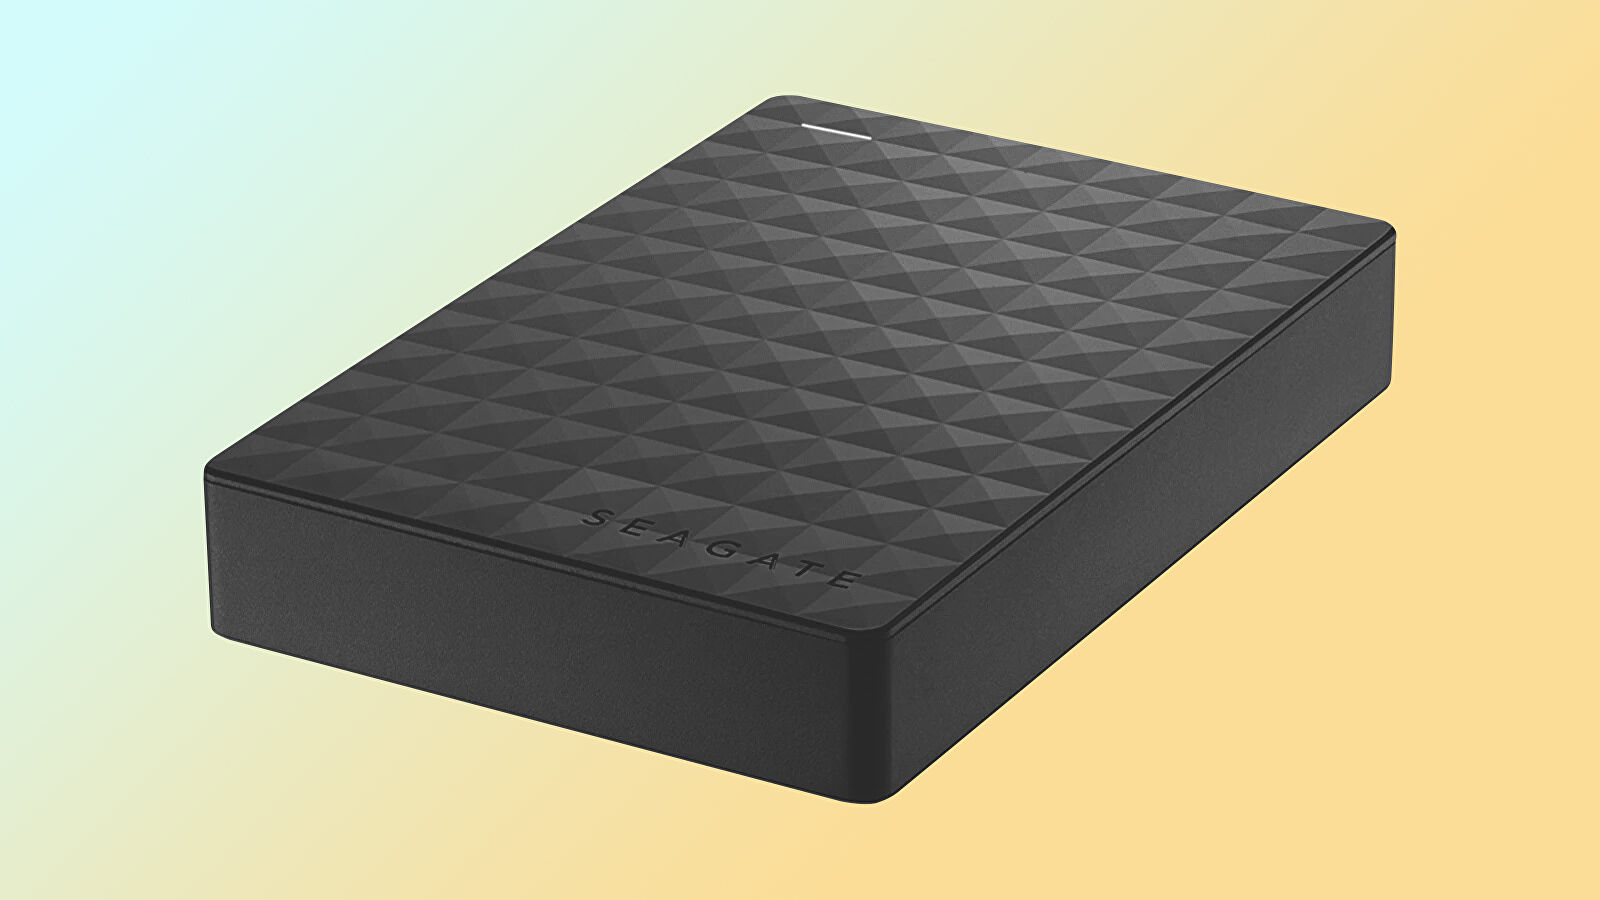 This massive 5TB external drive is down to just £85.94 today